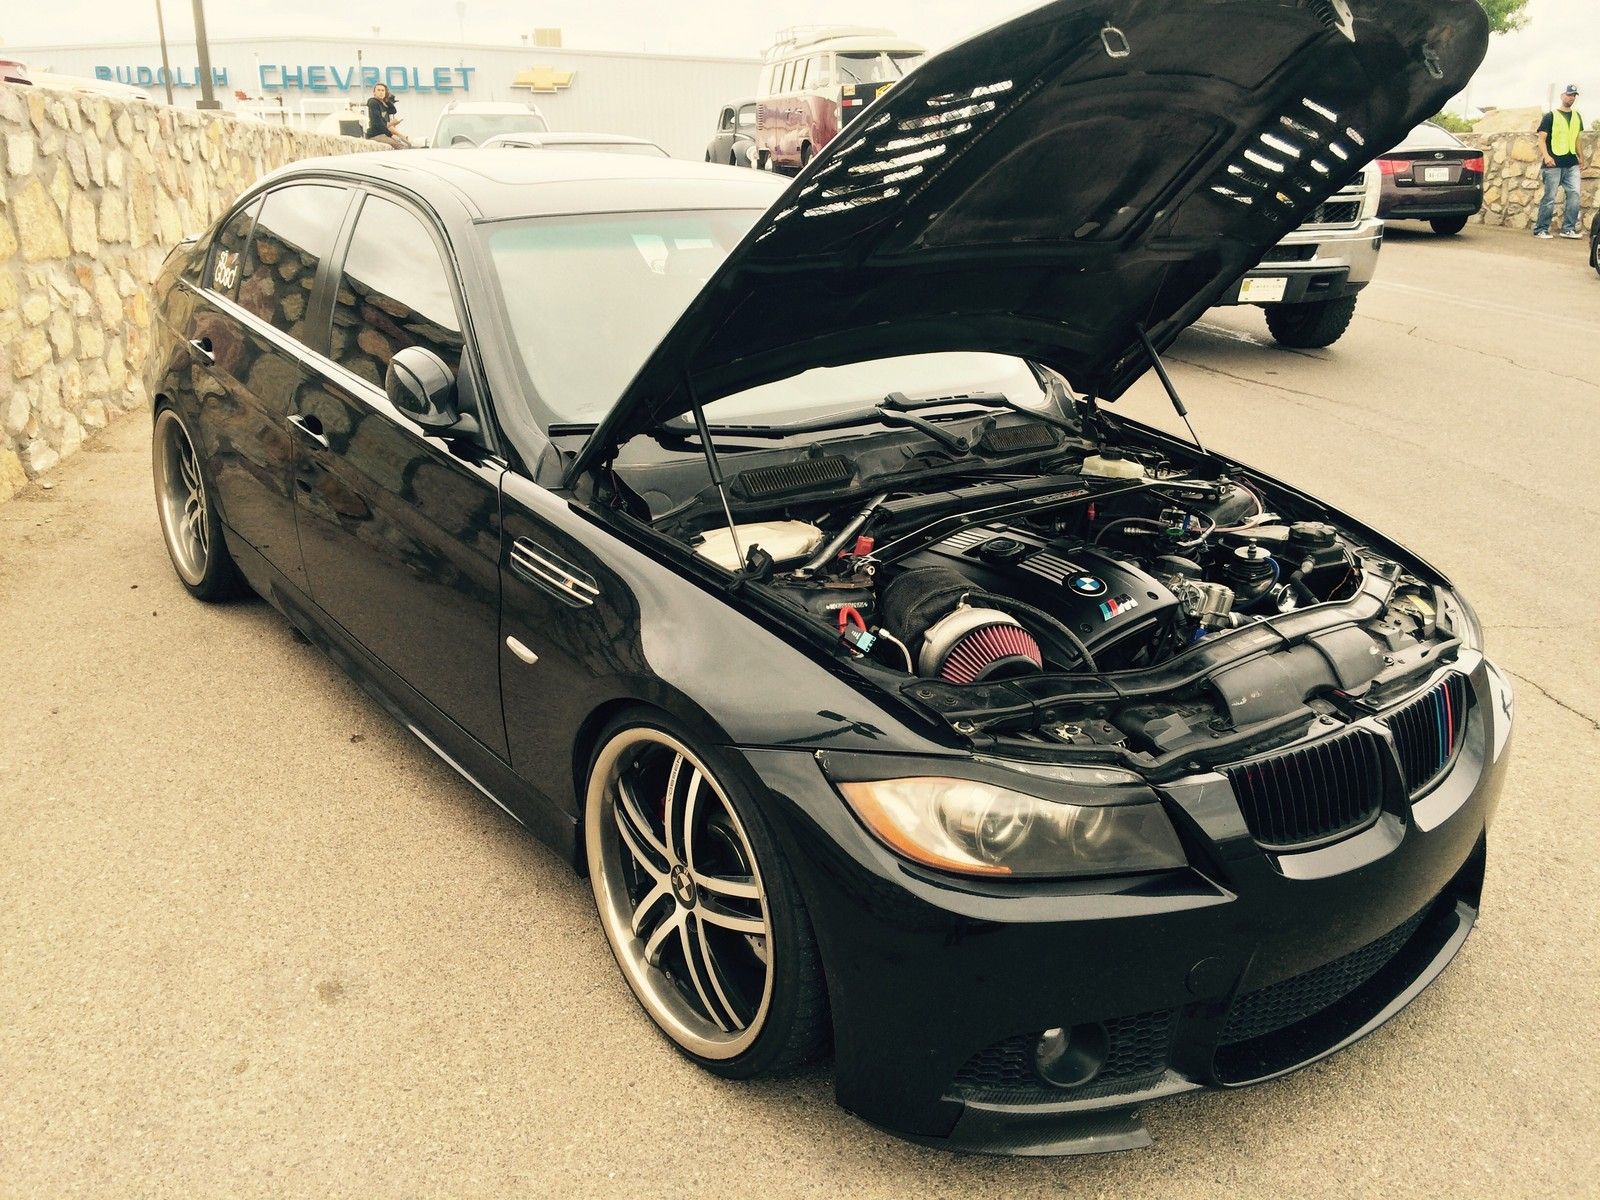 This BMW E I Just Put Down WHP And Lbft Of Torque - Bmw 335i pictures